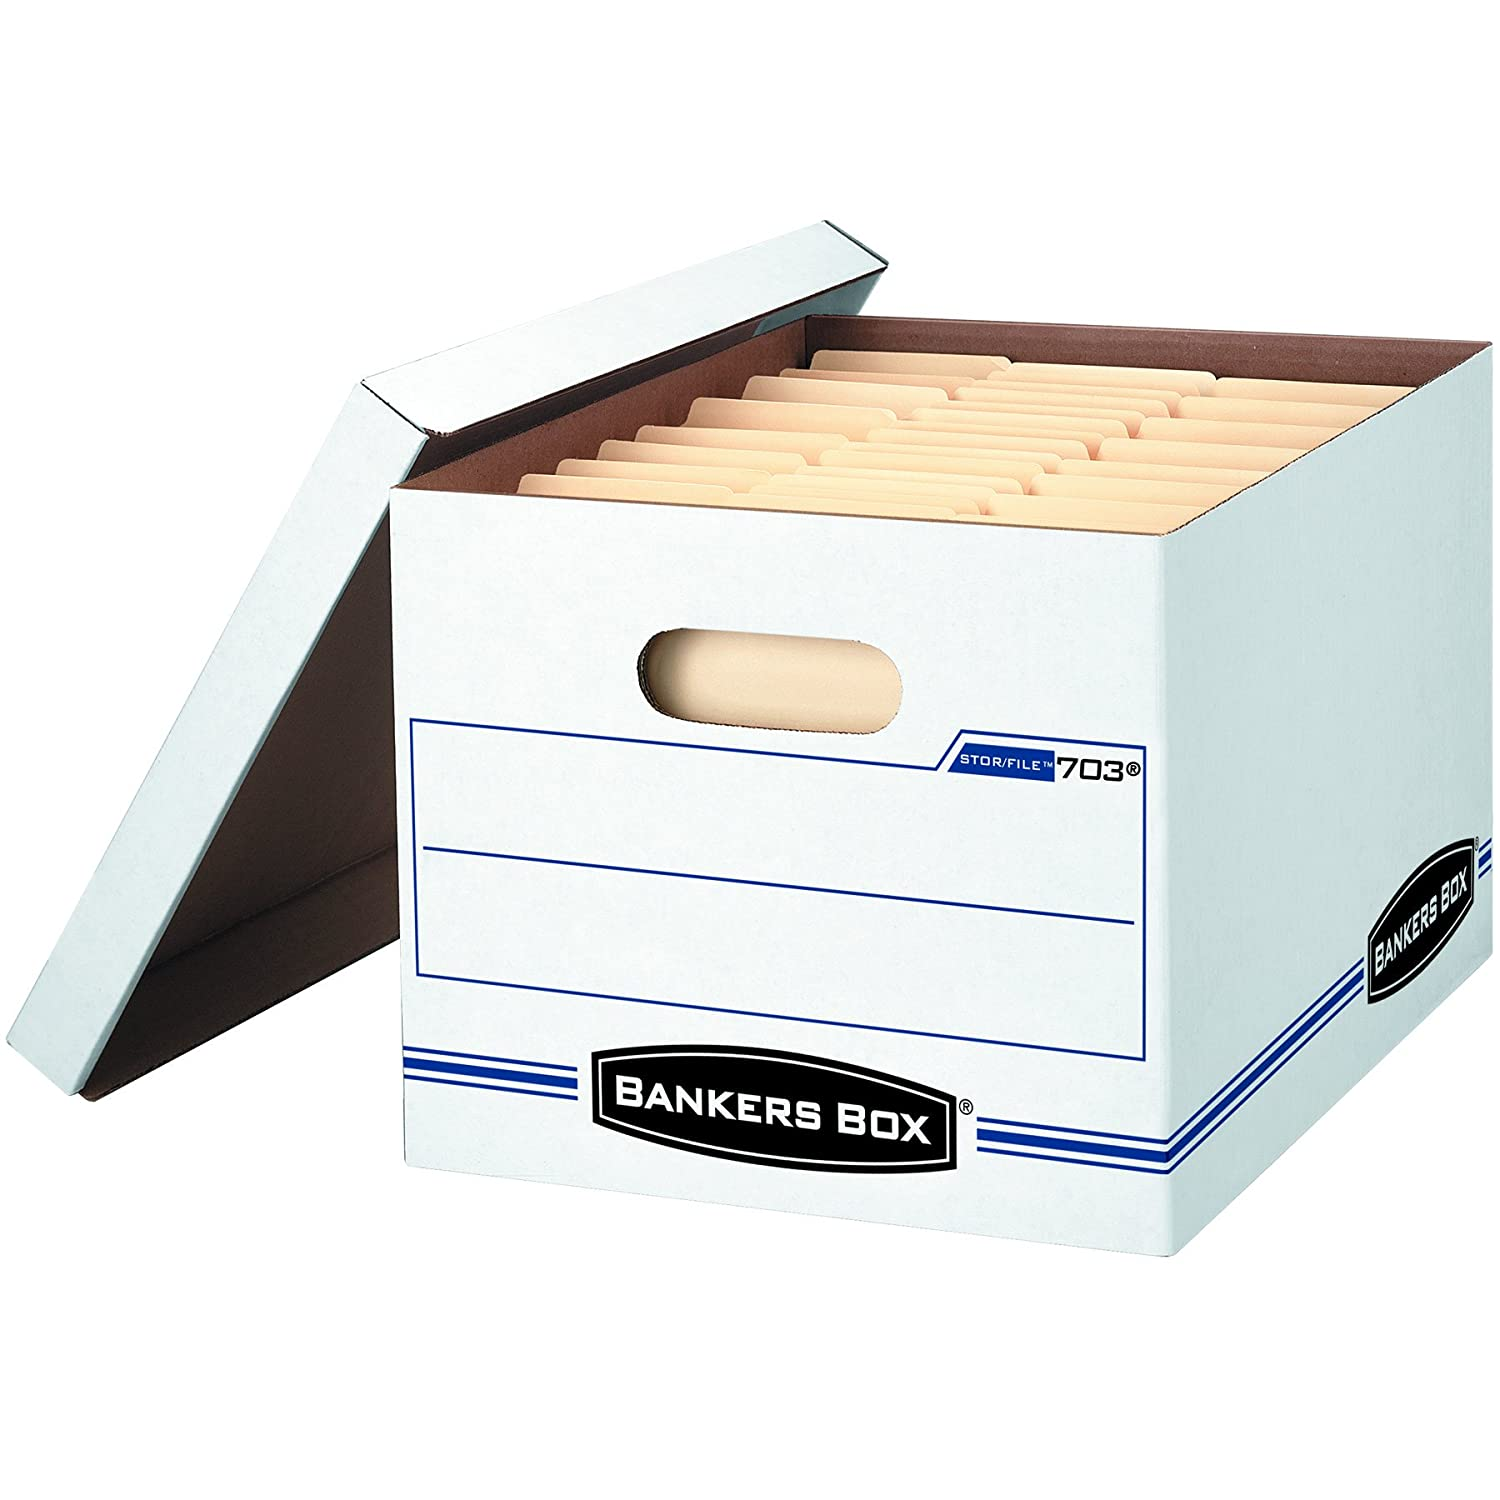 office mailbox organizer. Bankers Box Stor File Storage with Lift Off Lid  Letter Legal Boxes Amazon com Office School Supplies